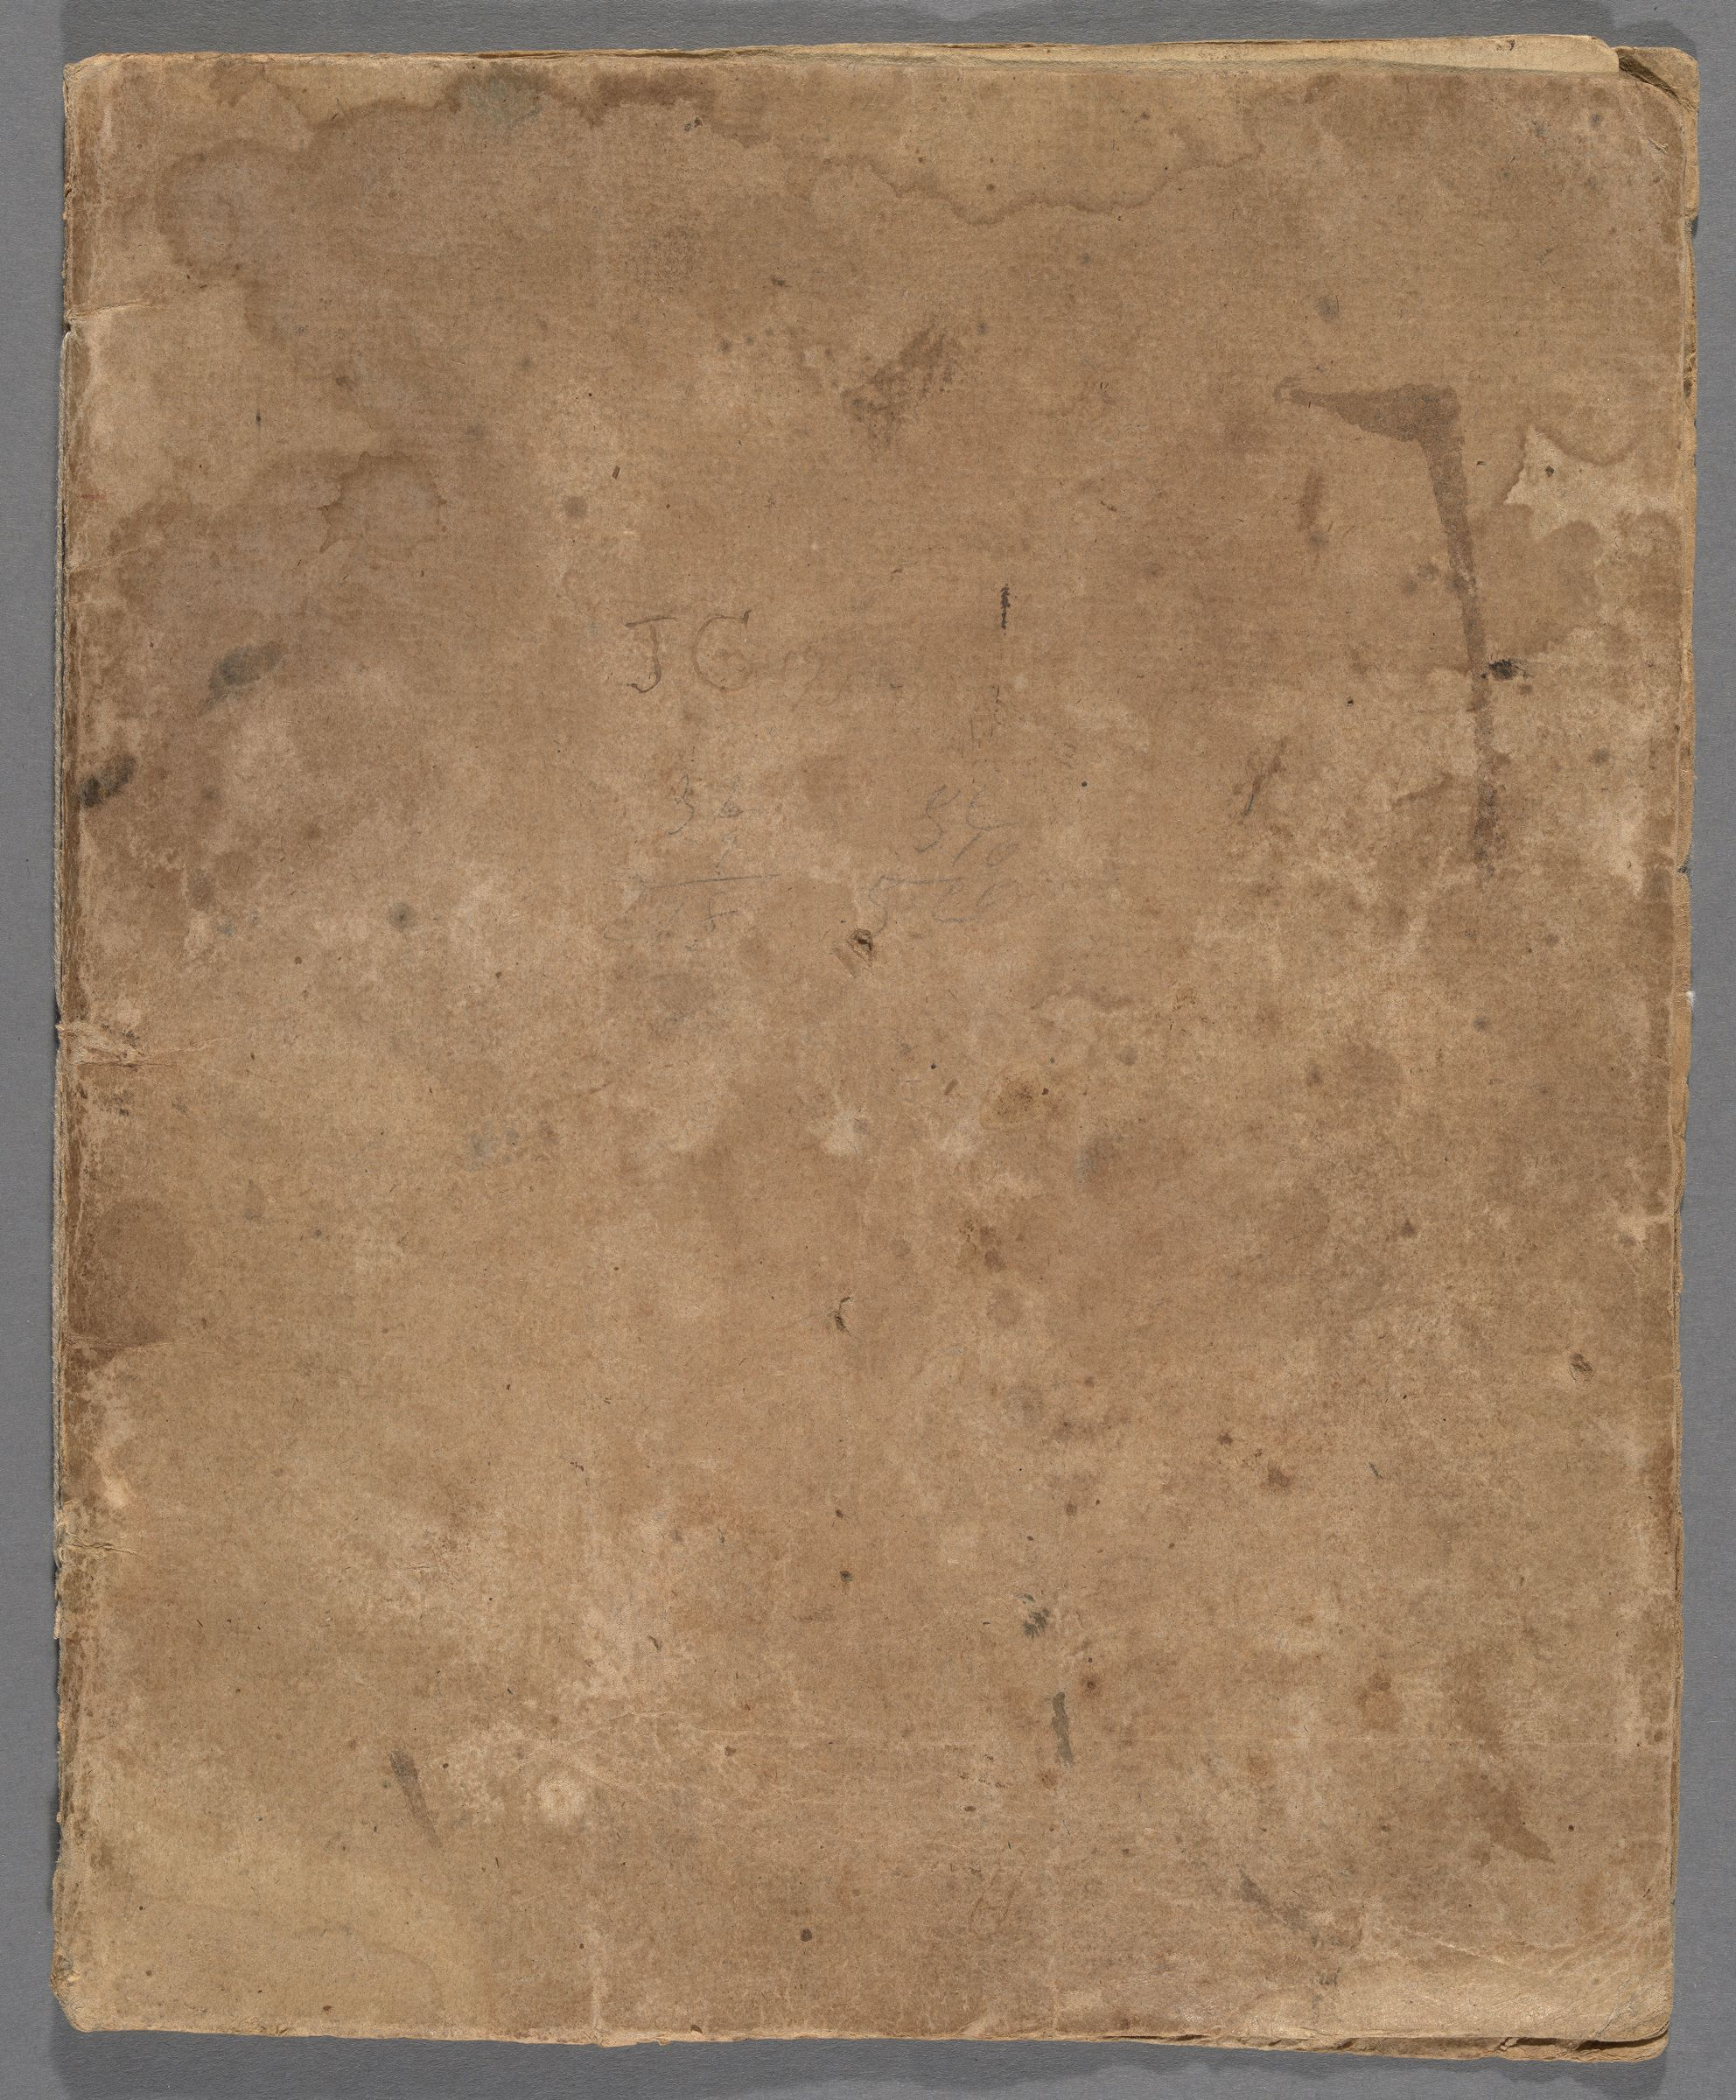 John Gordon notebook, 1793-1795